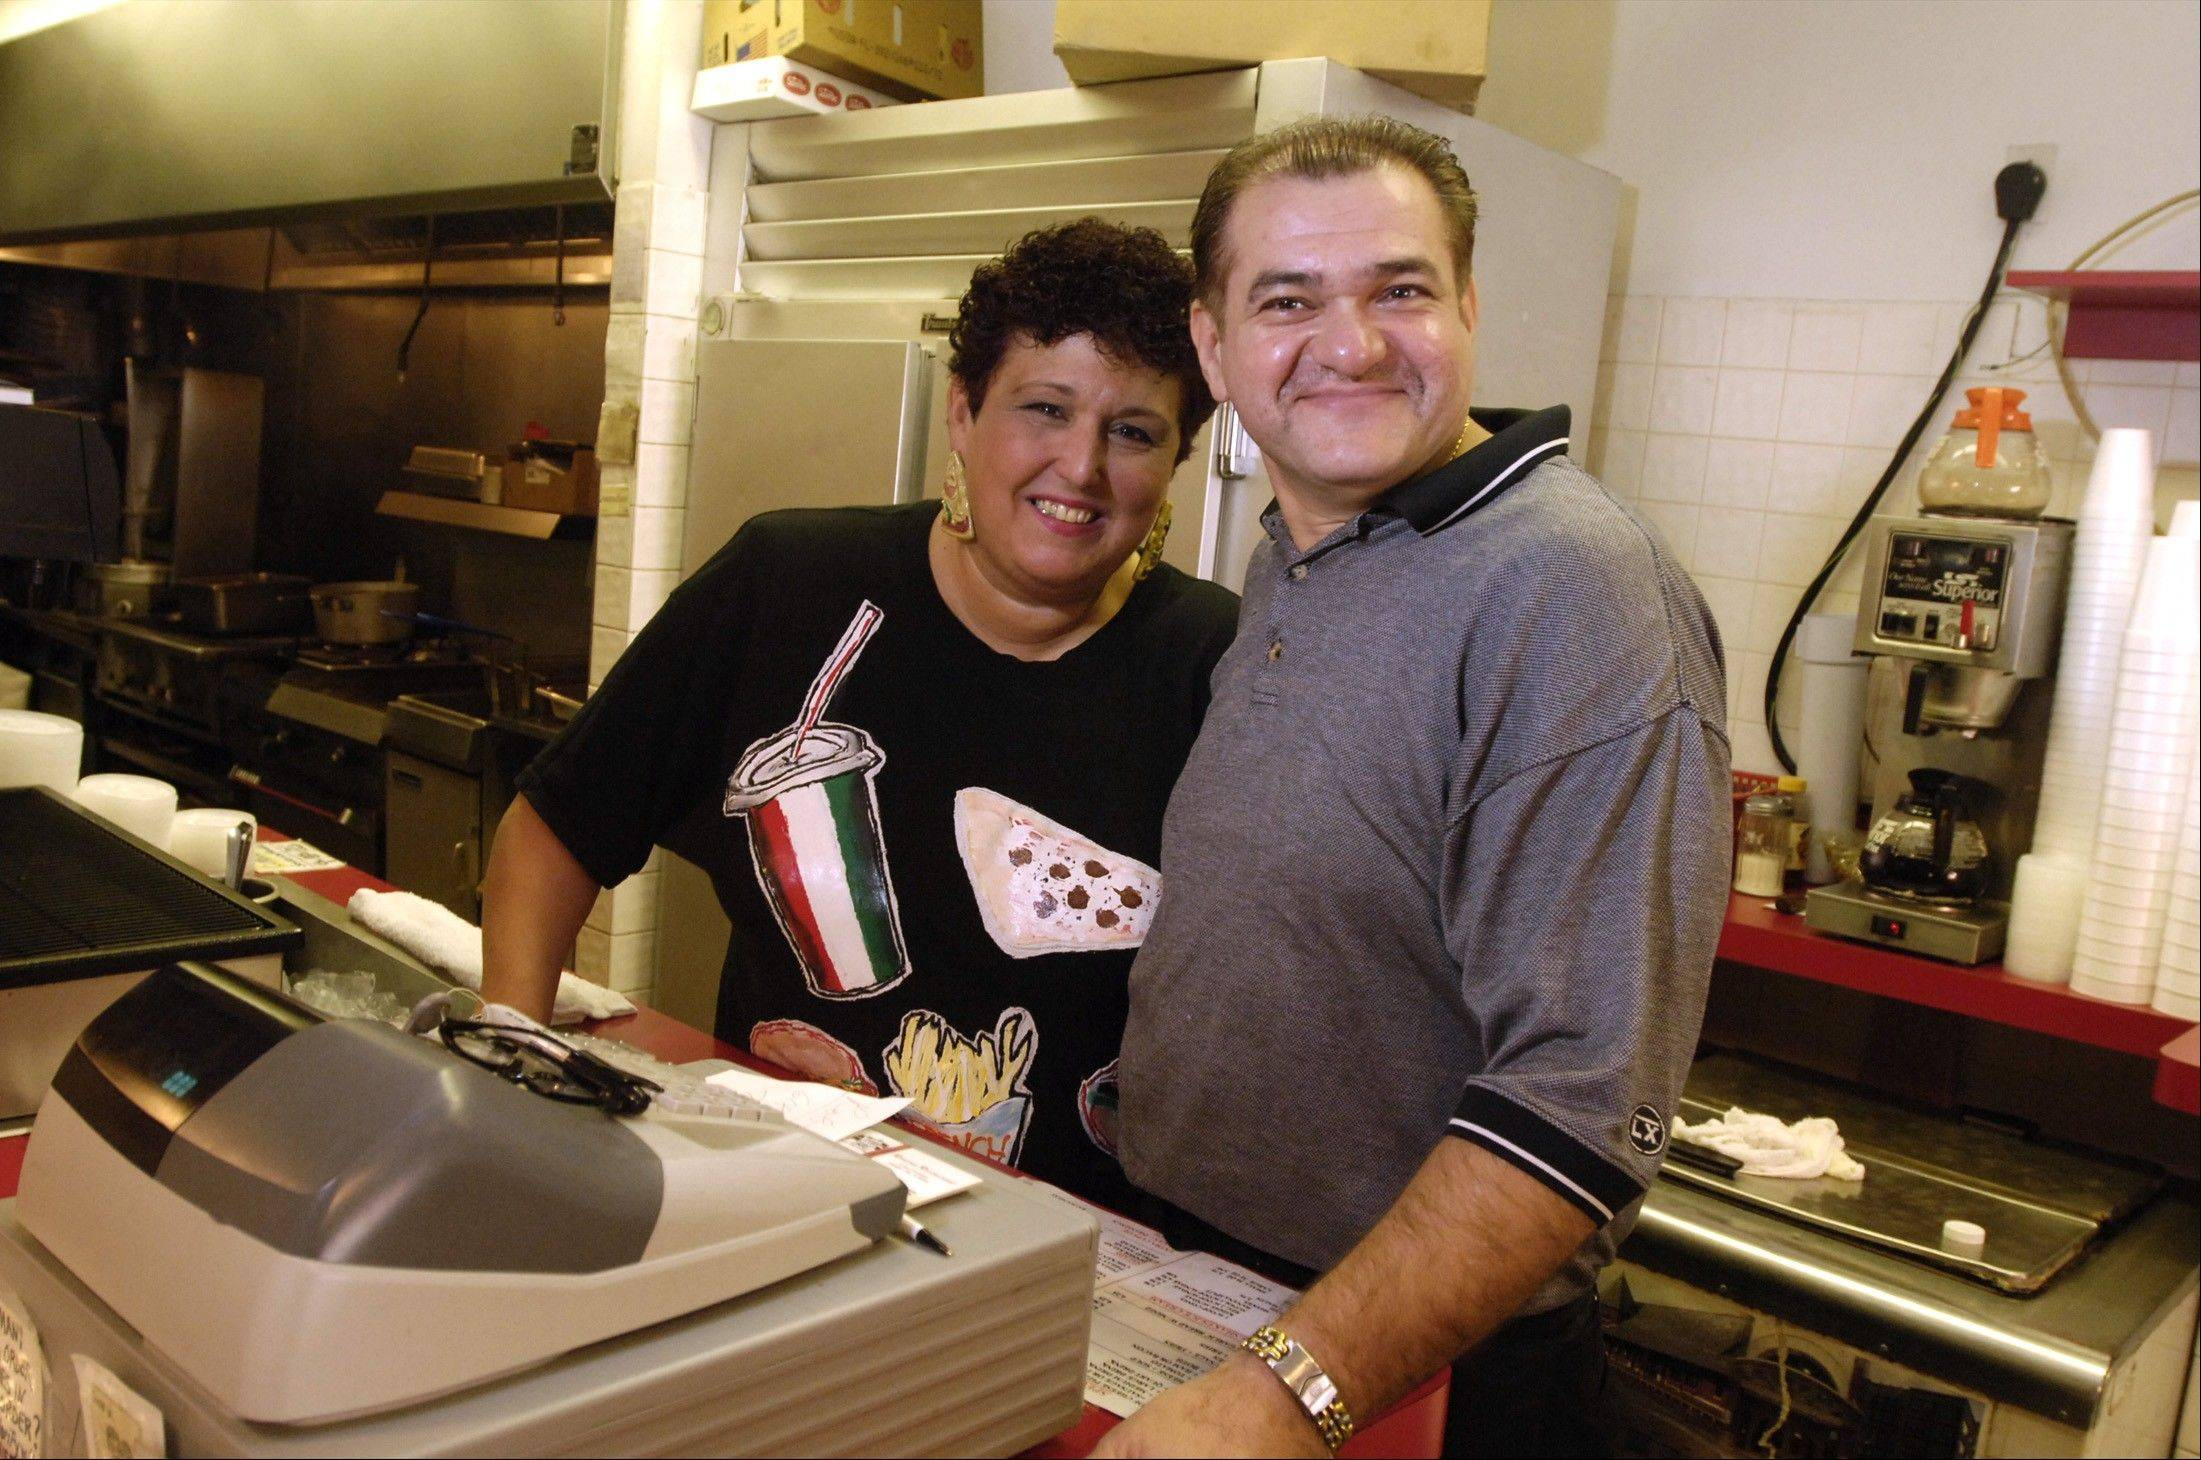 Andrea and Bobby Tsambarlis, founded the Riviera Restaurant in downtown Arlington Heights. Now, the restaurant�s latest owner is relaunching it as Campbell Street Hot Dogs �N� More, hearkening back to his earlier restaurant experience.